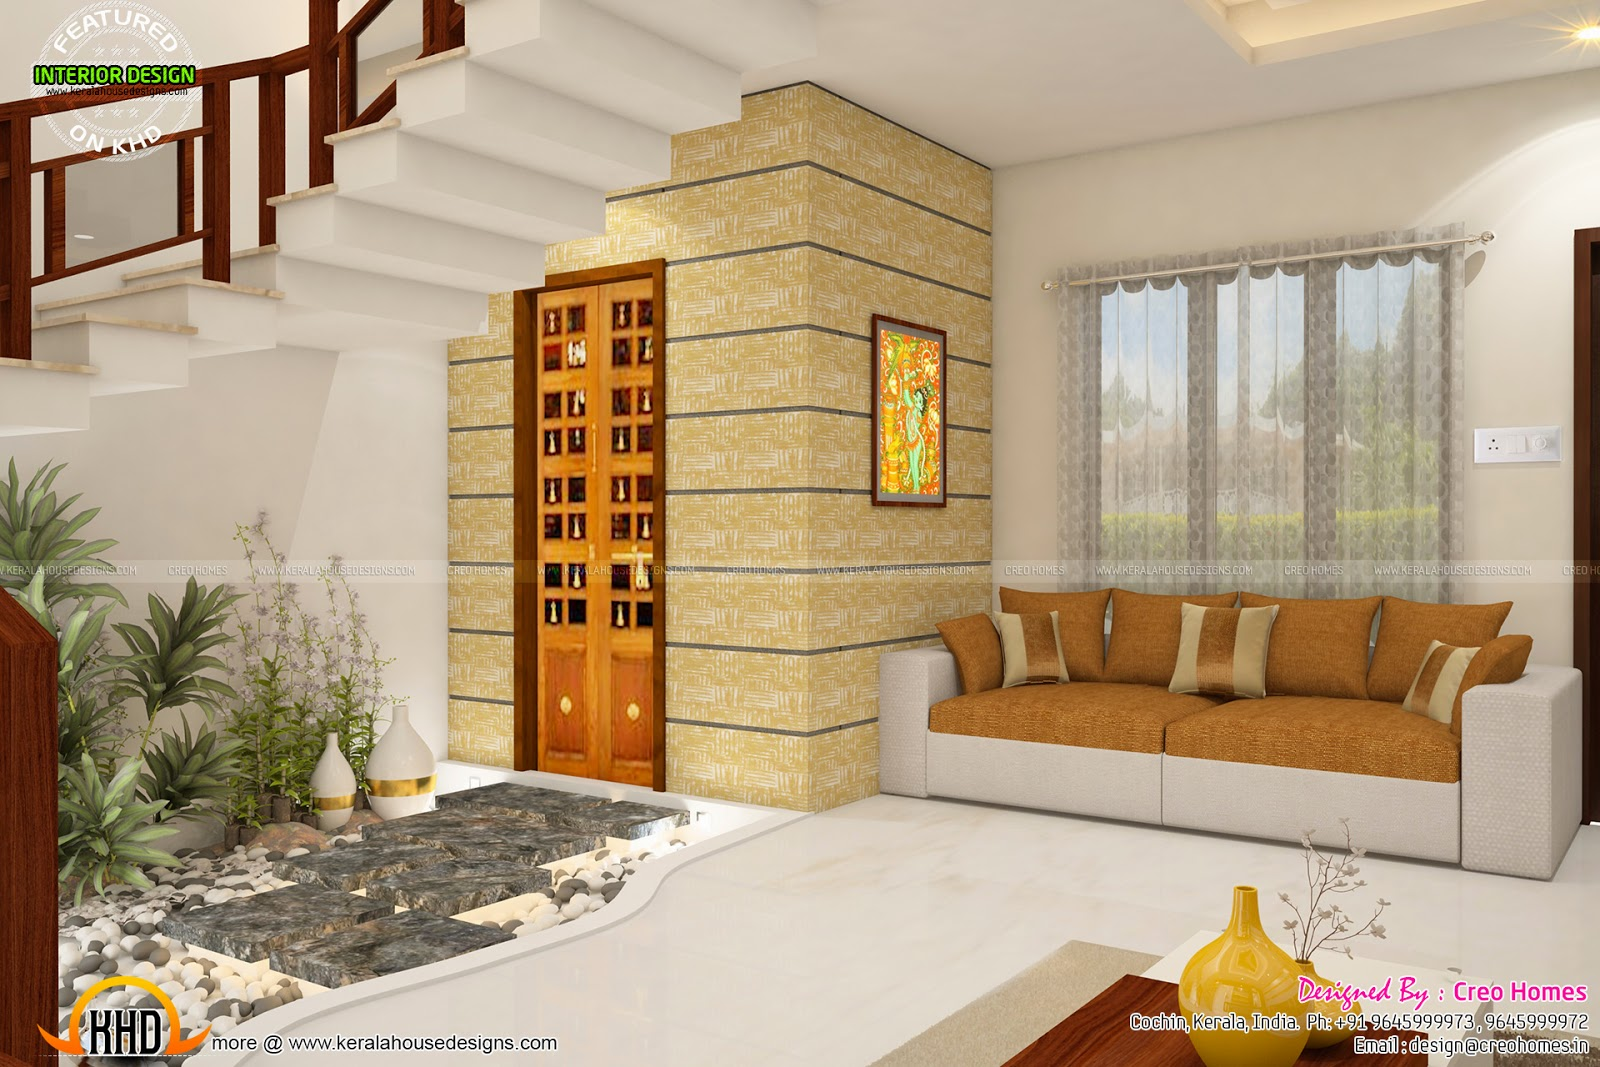 Total home interior solutions by creo homes kerala home for Kerala home interior design ideas